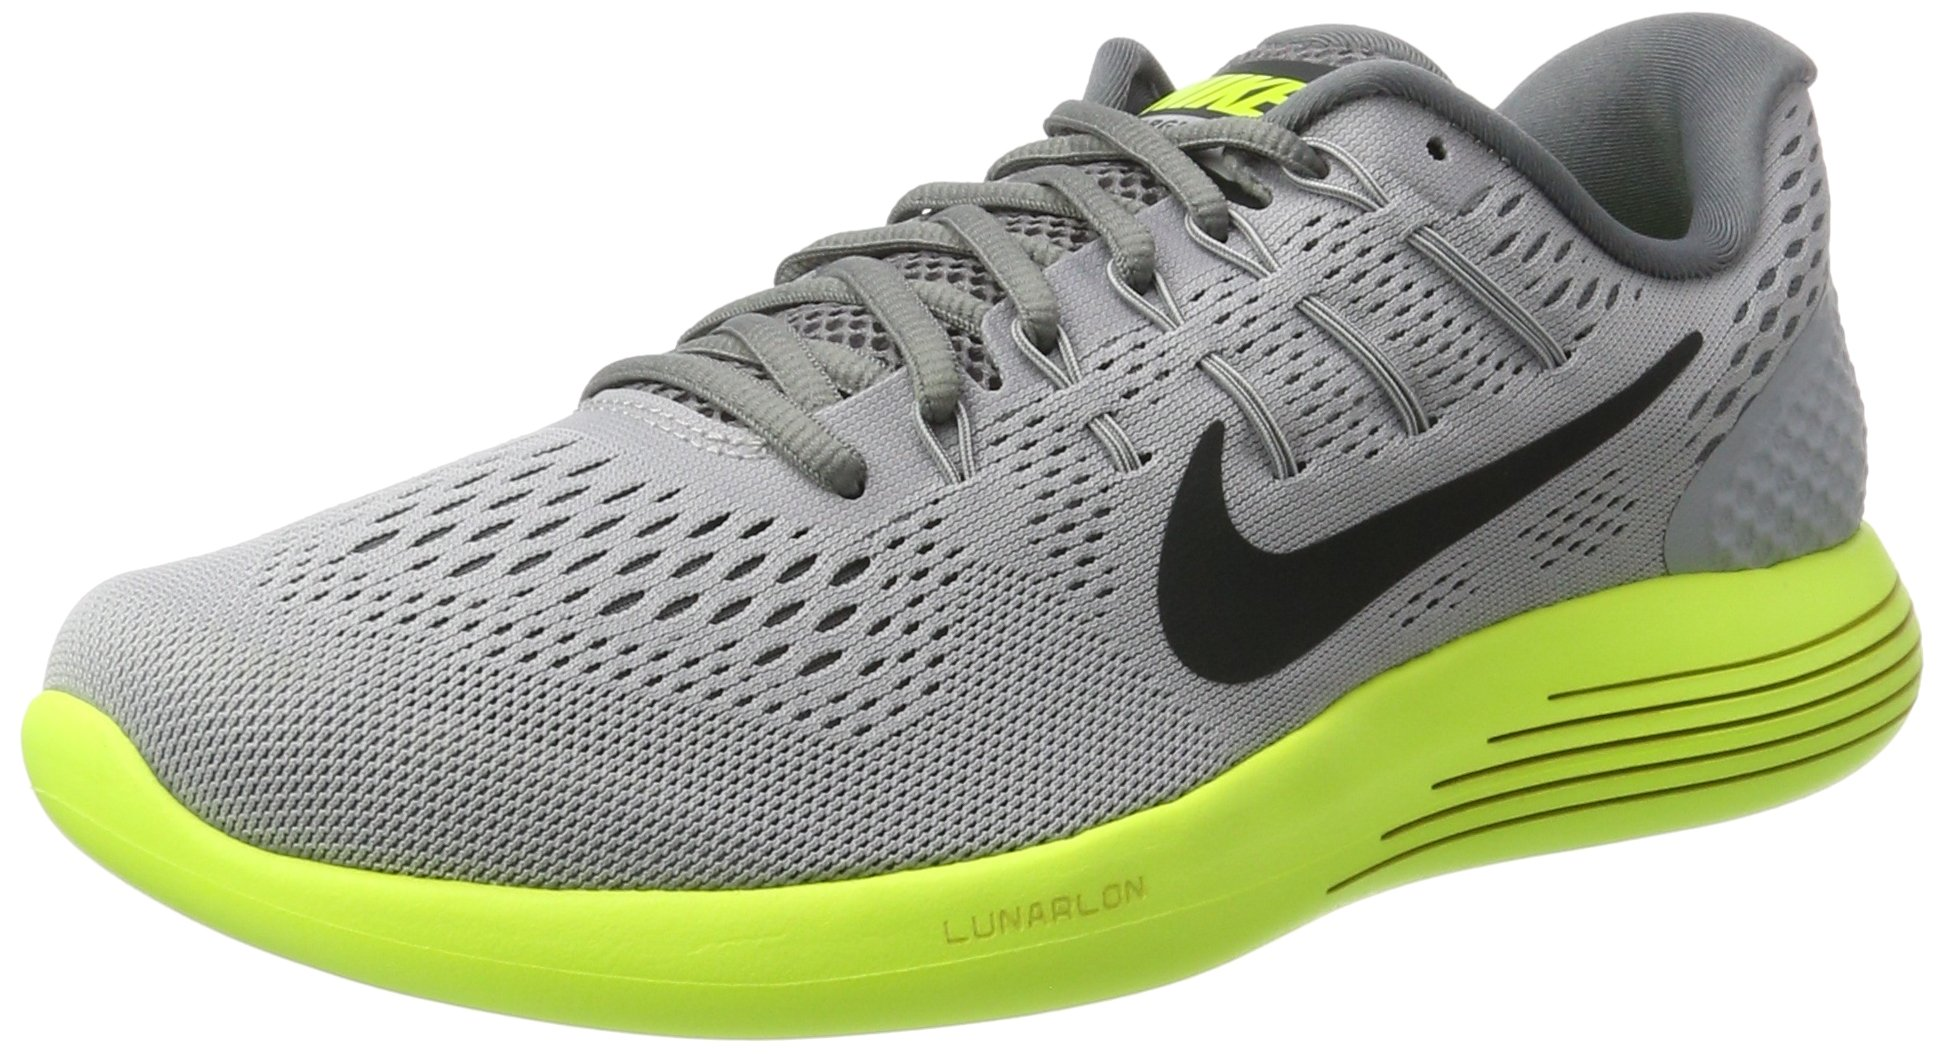 sneakers for cheap c6cff 6b9ac Galleon - Nike Lunarglide 8 Wolf Grey Anthracite Volt Cool Grey Men s  Running Shoes